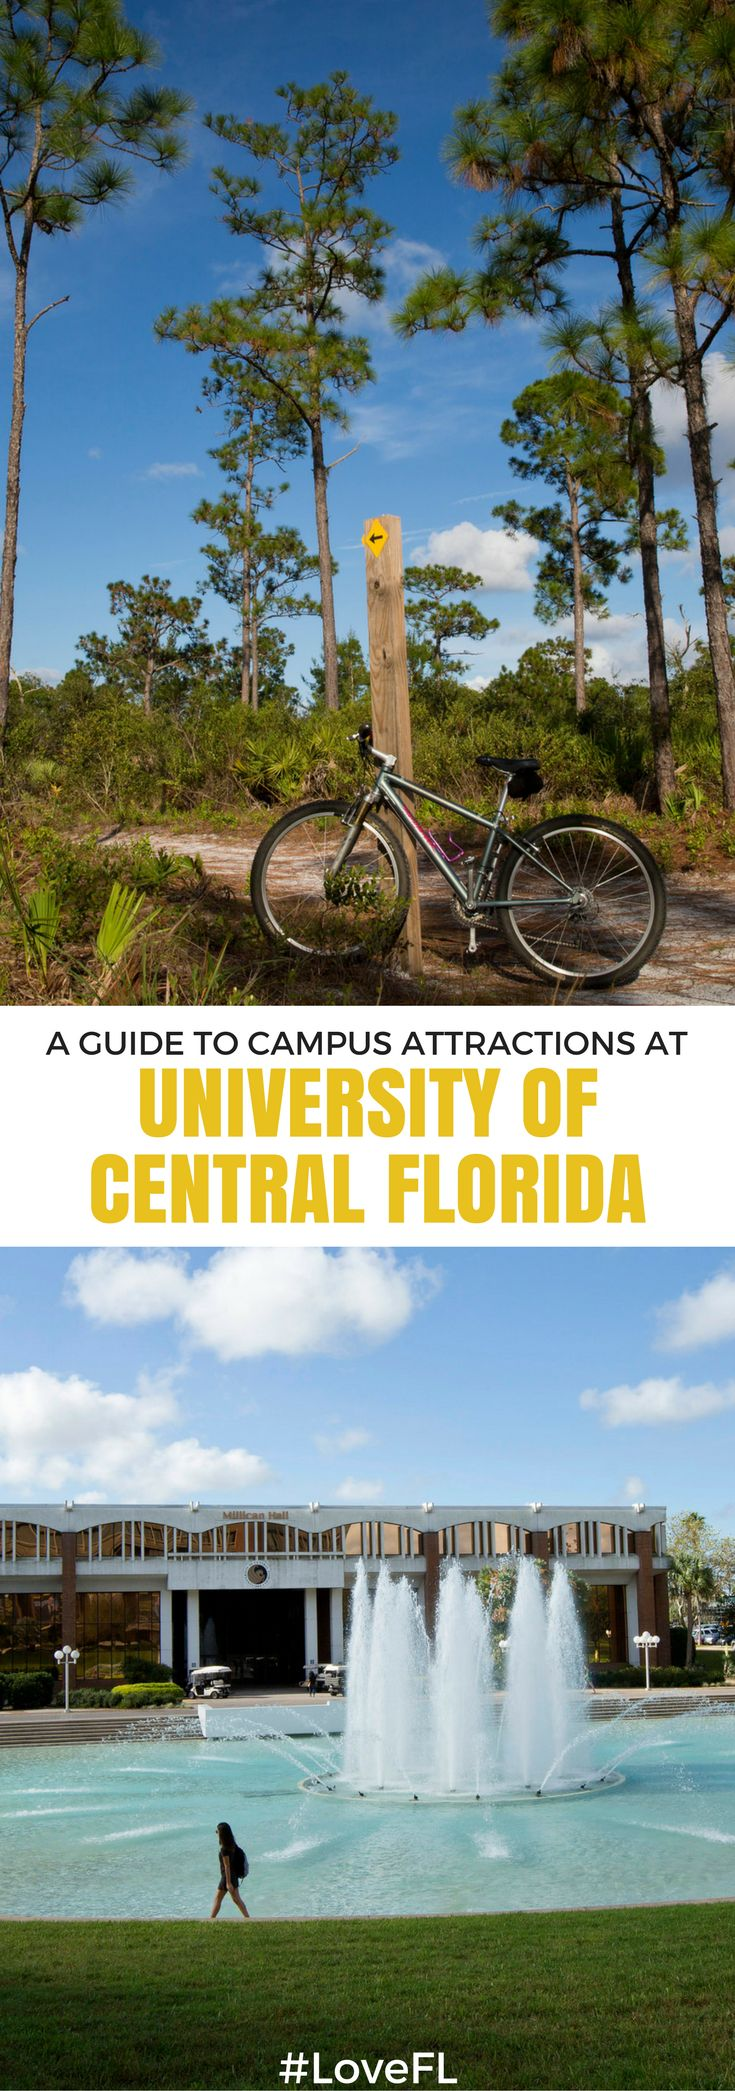 A Guide to Campus Attractions at the University of Central Florida   #Florida #College #Travel #UCF